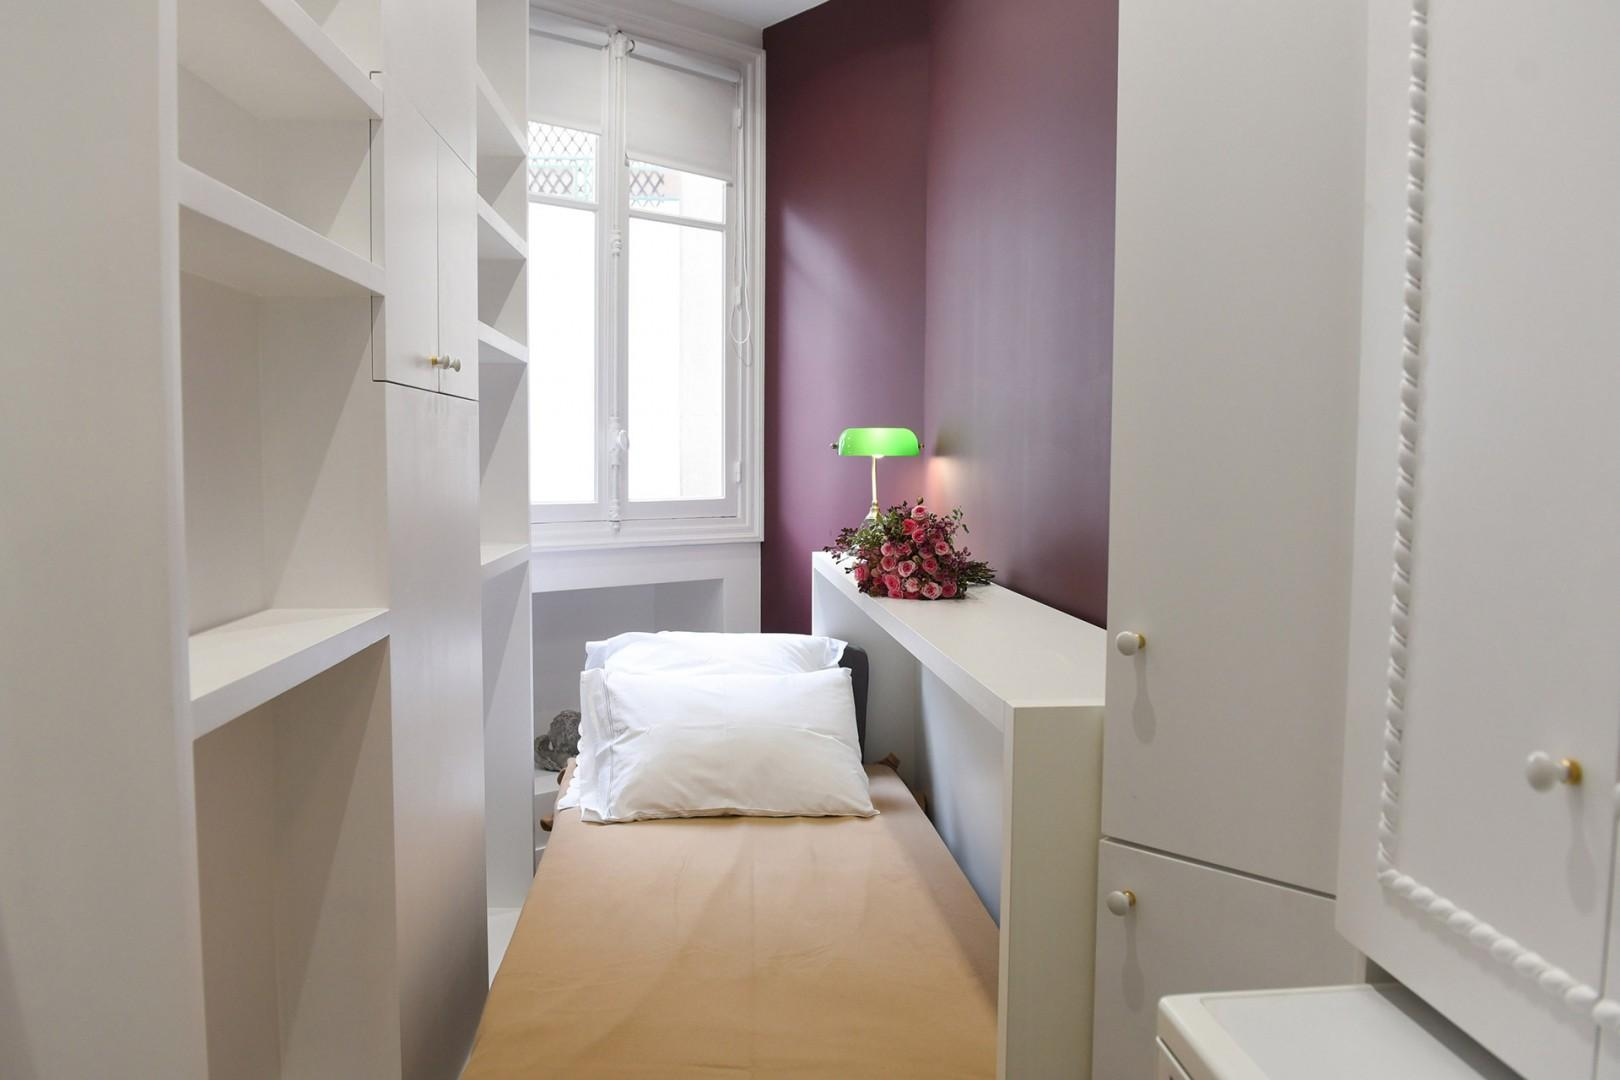 Bedroom 3 has a bed that folds open to create an extra sleeping space.